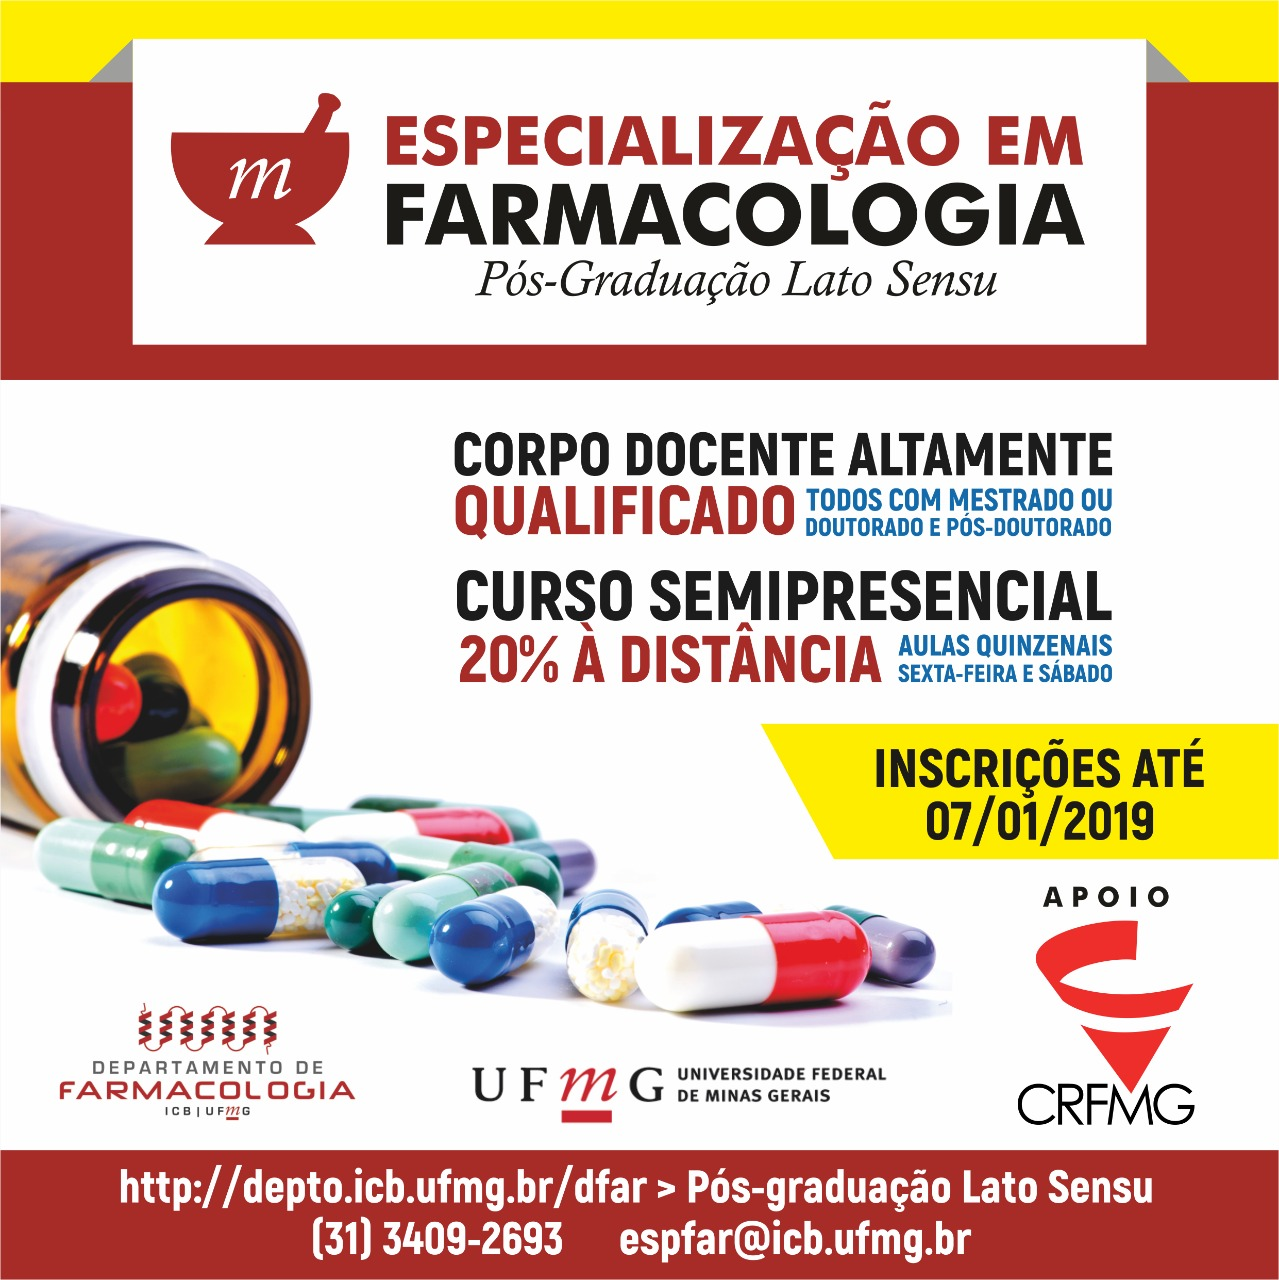 Especializacao farmacologia